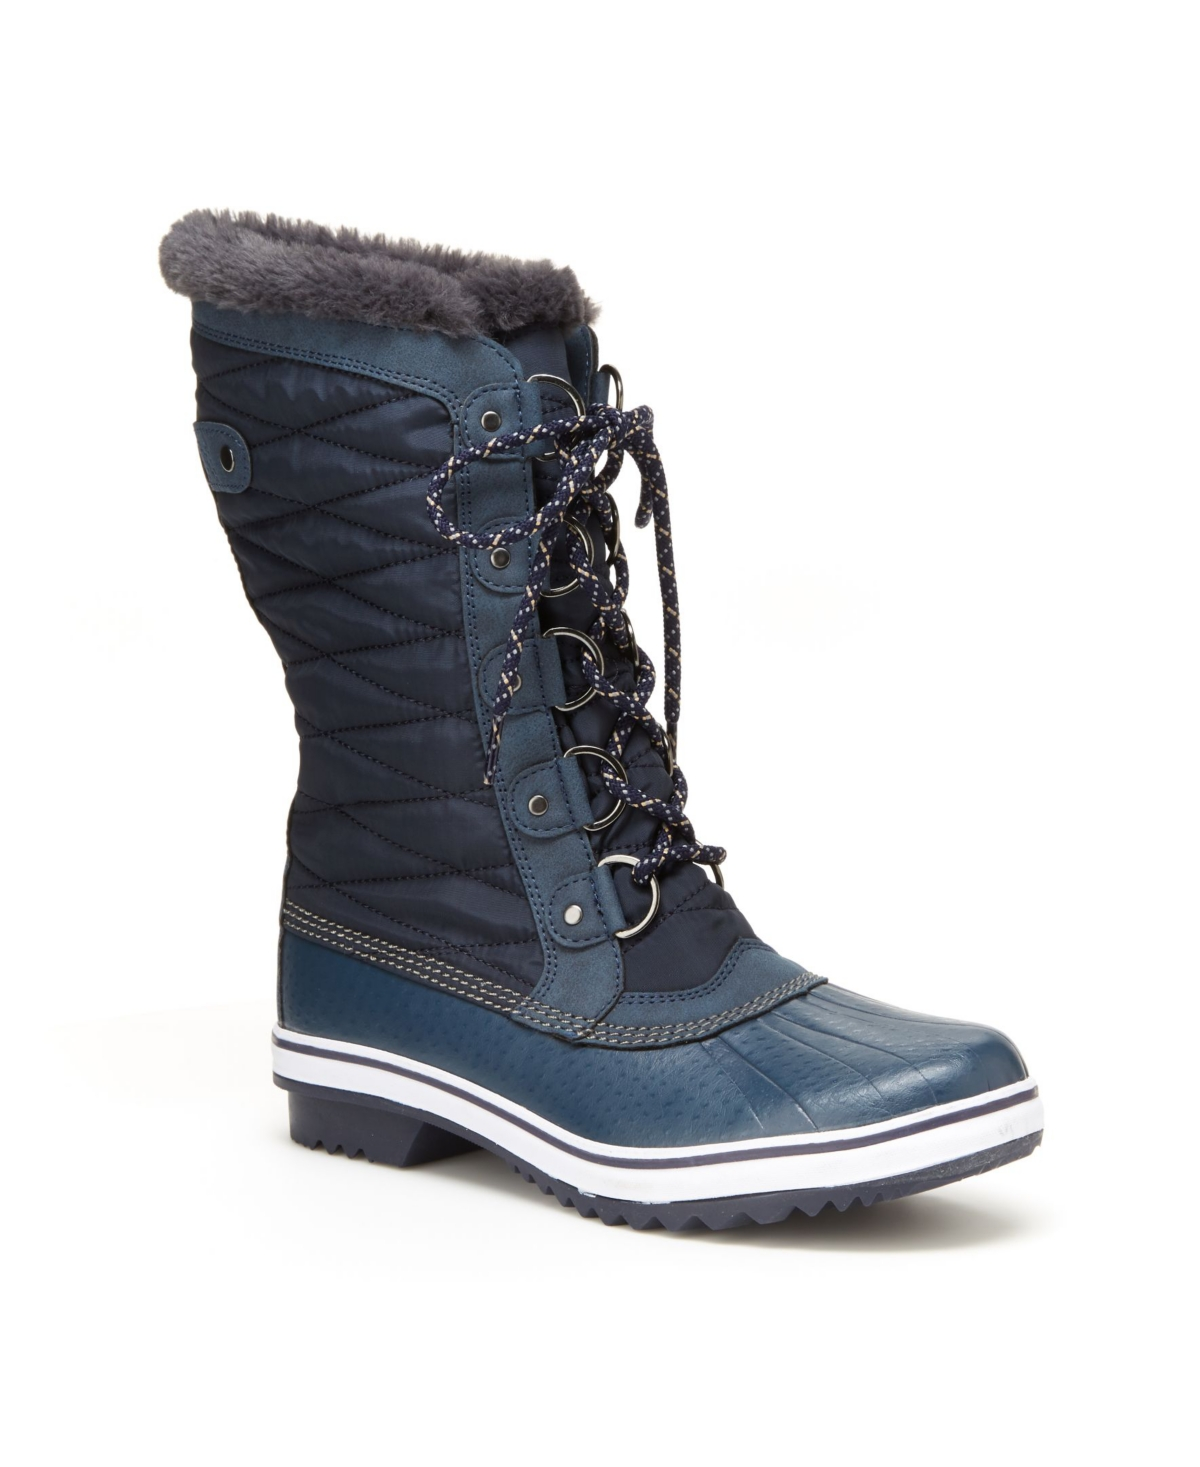 Chilly Women's Mid Calf Boots Women's Shoes